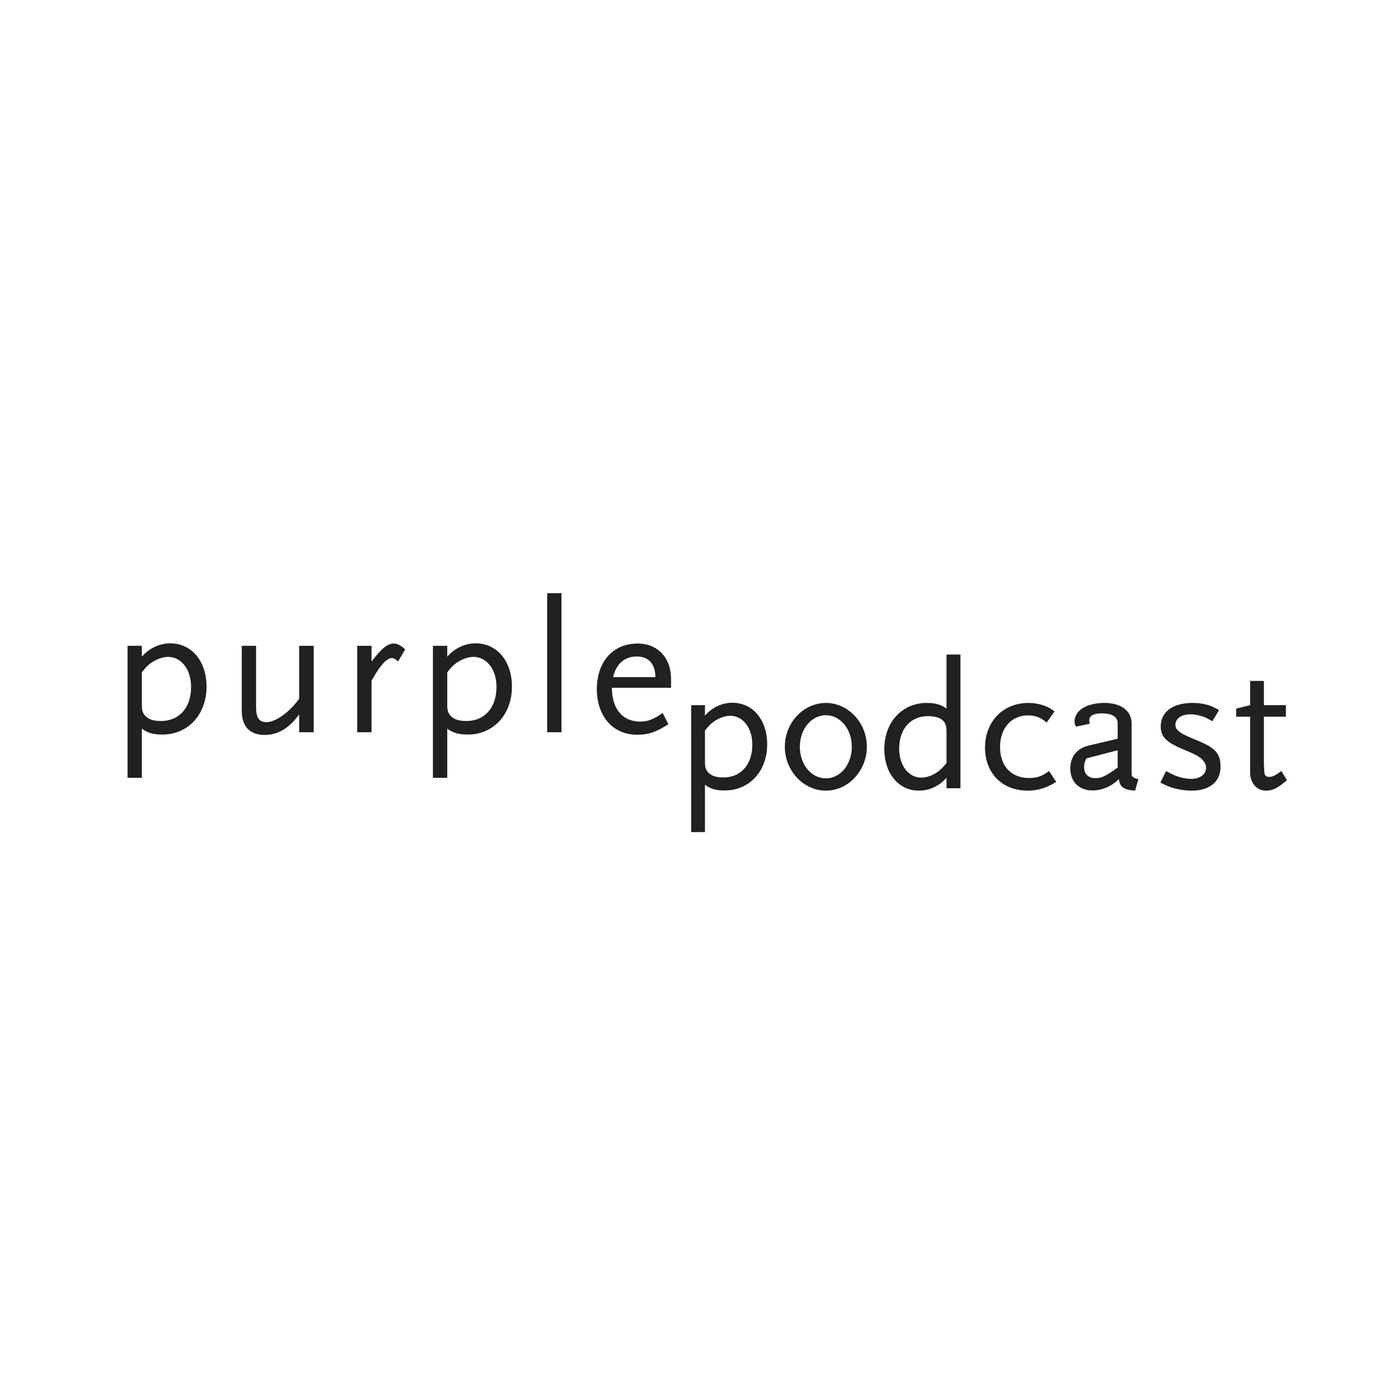 1400x1400purplepodcast.png